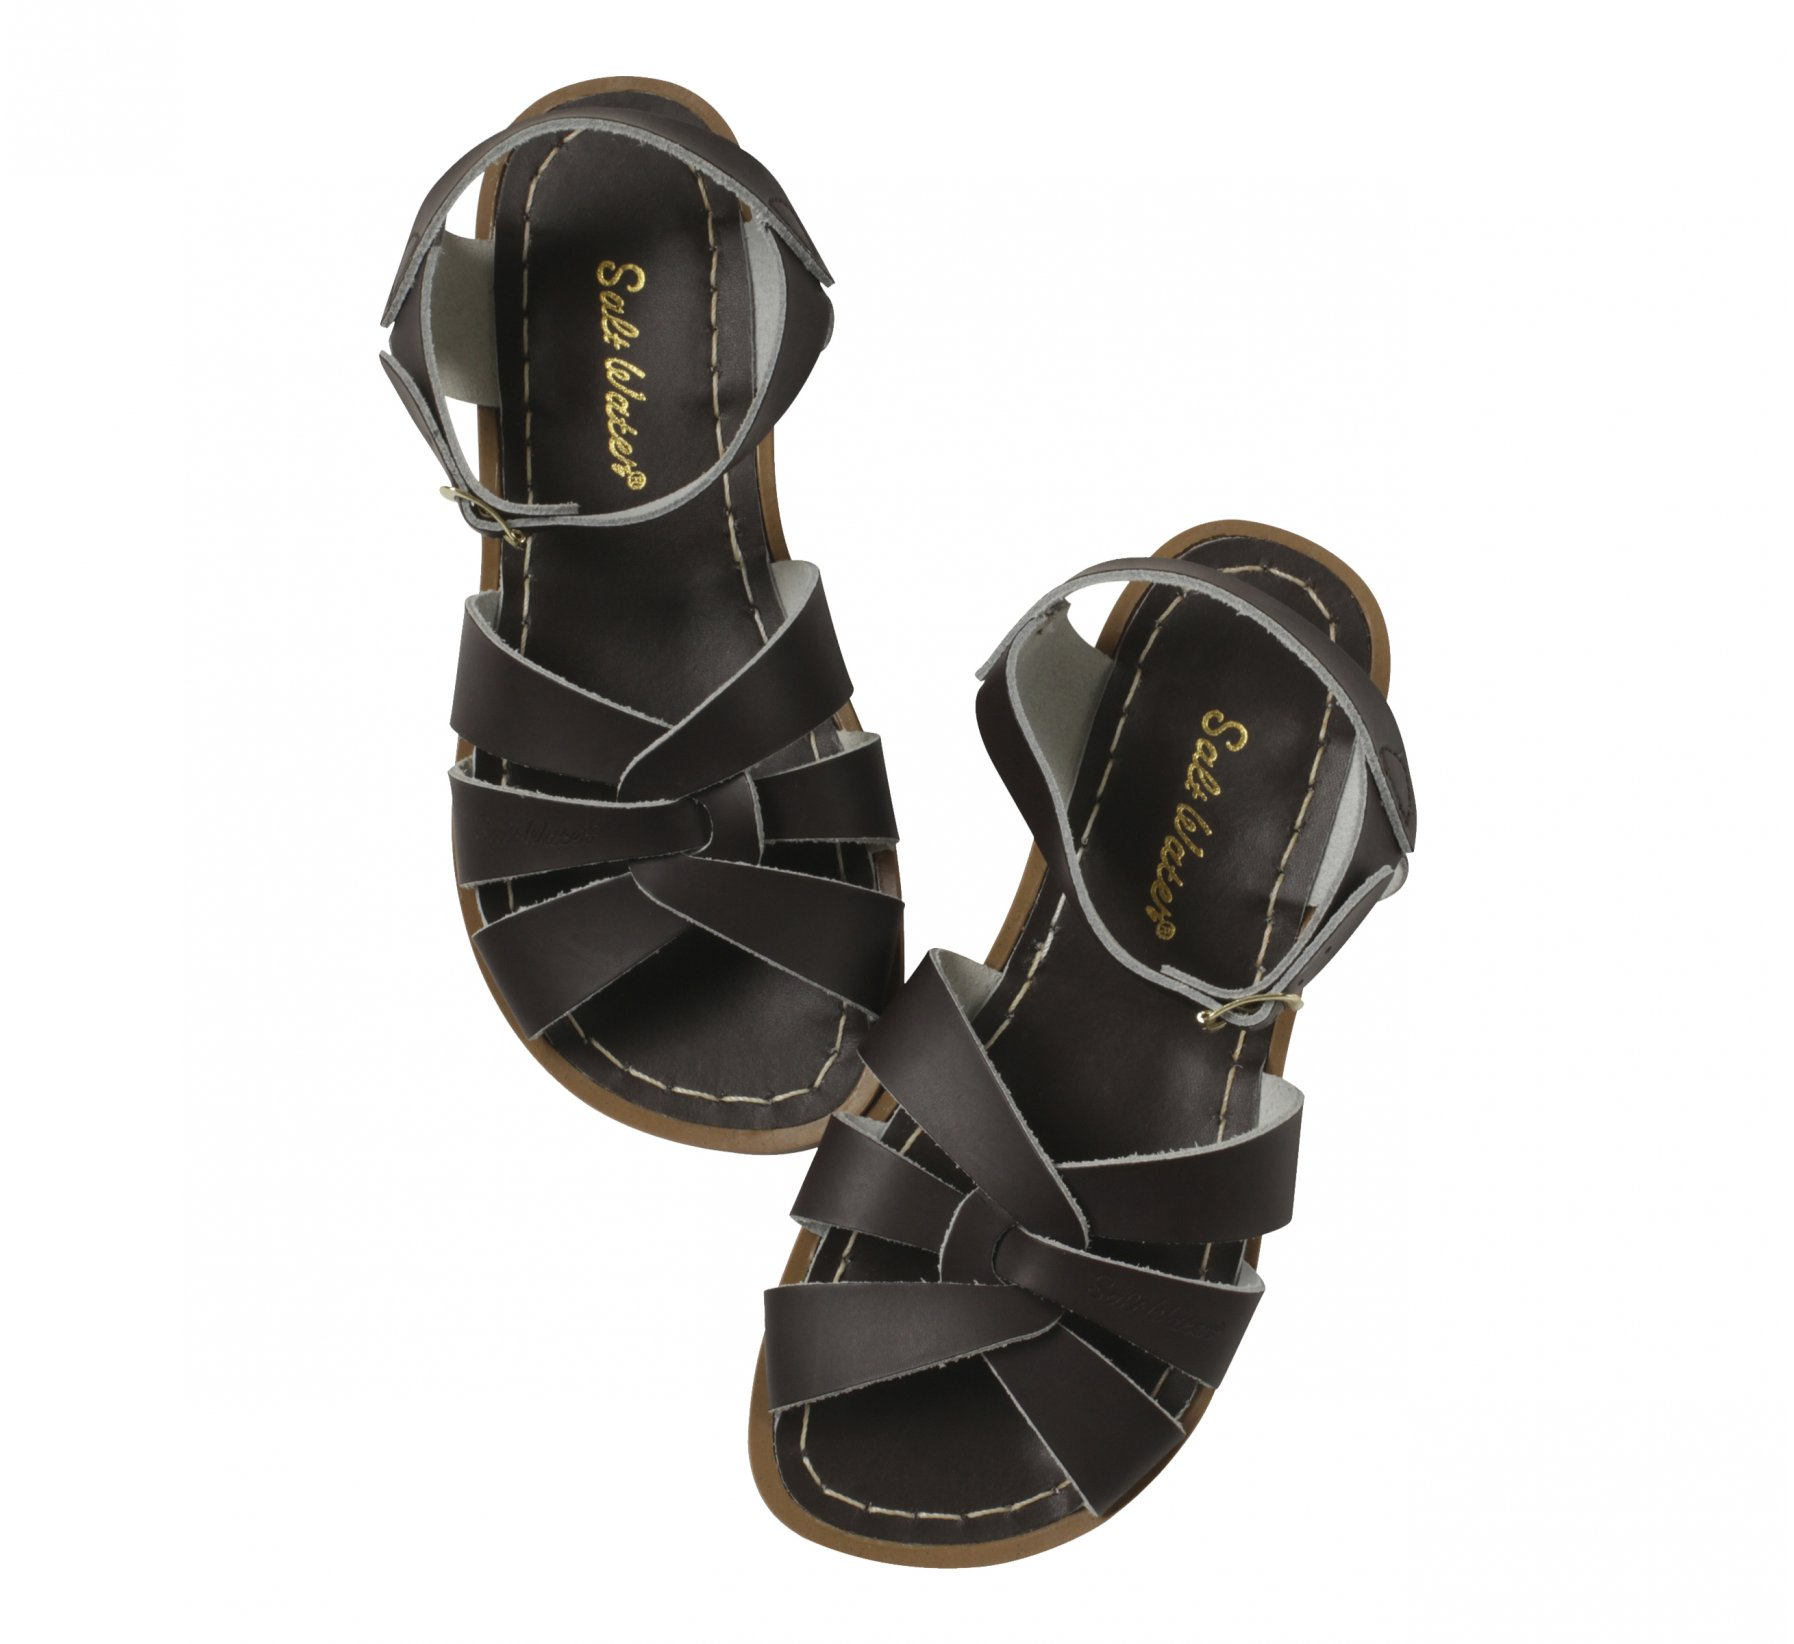 Original Coklat - Salt Water Sandals